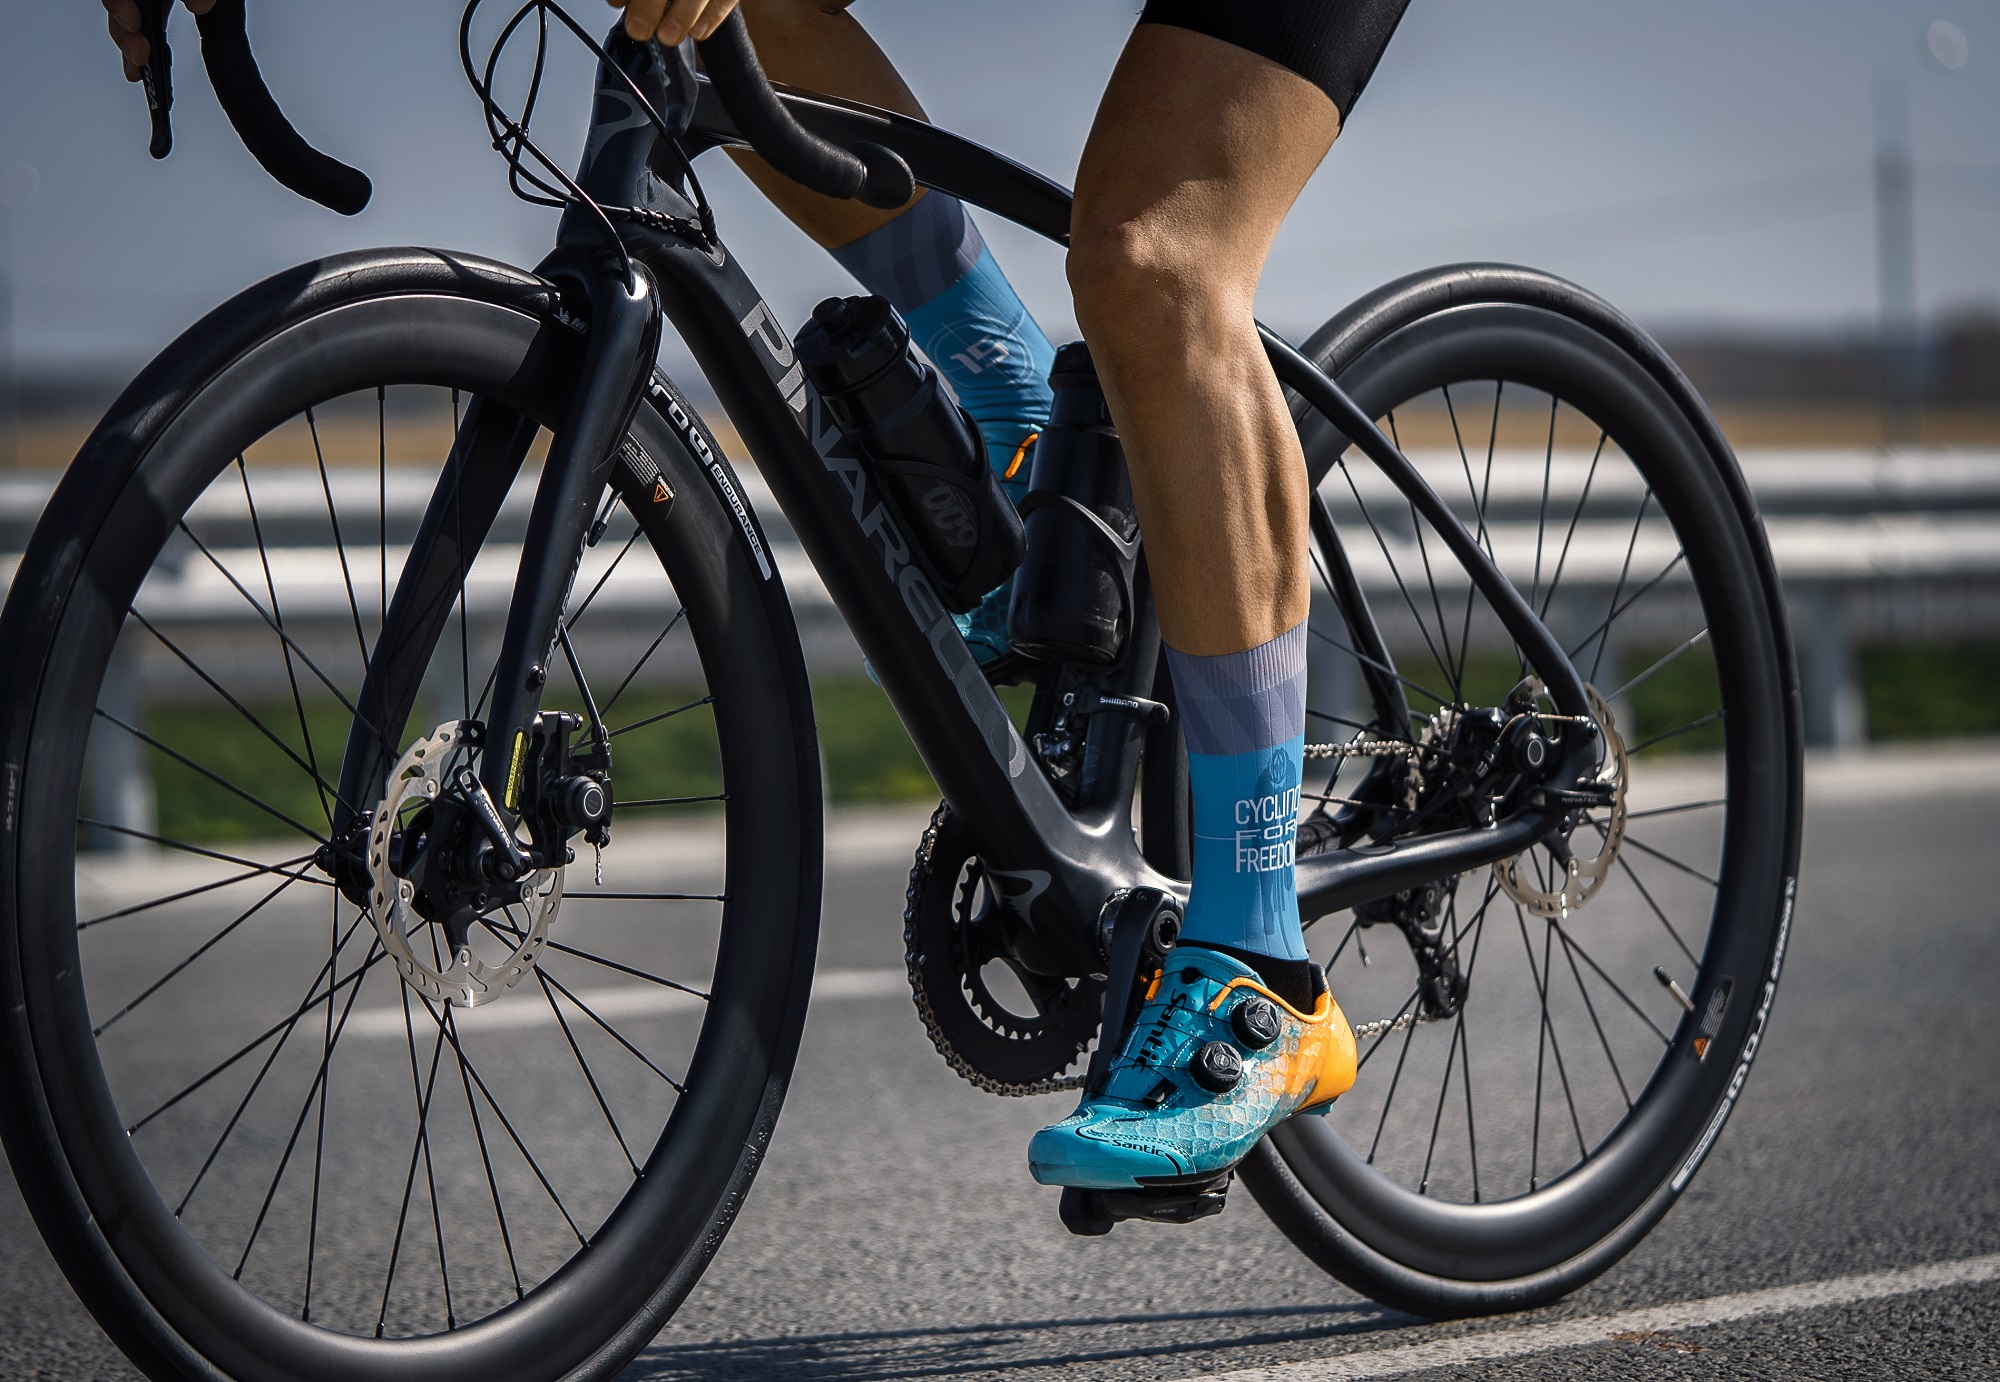 Stay ready for the ride adventure in the Alpha Road Shoes. #CyclingShoe  #roadshoe